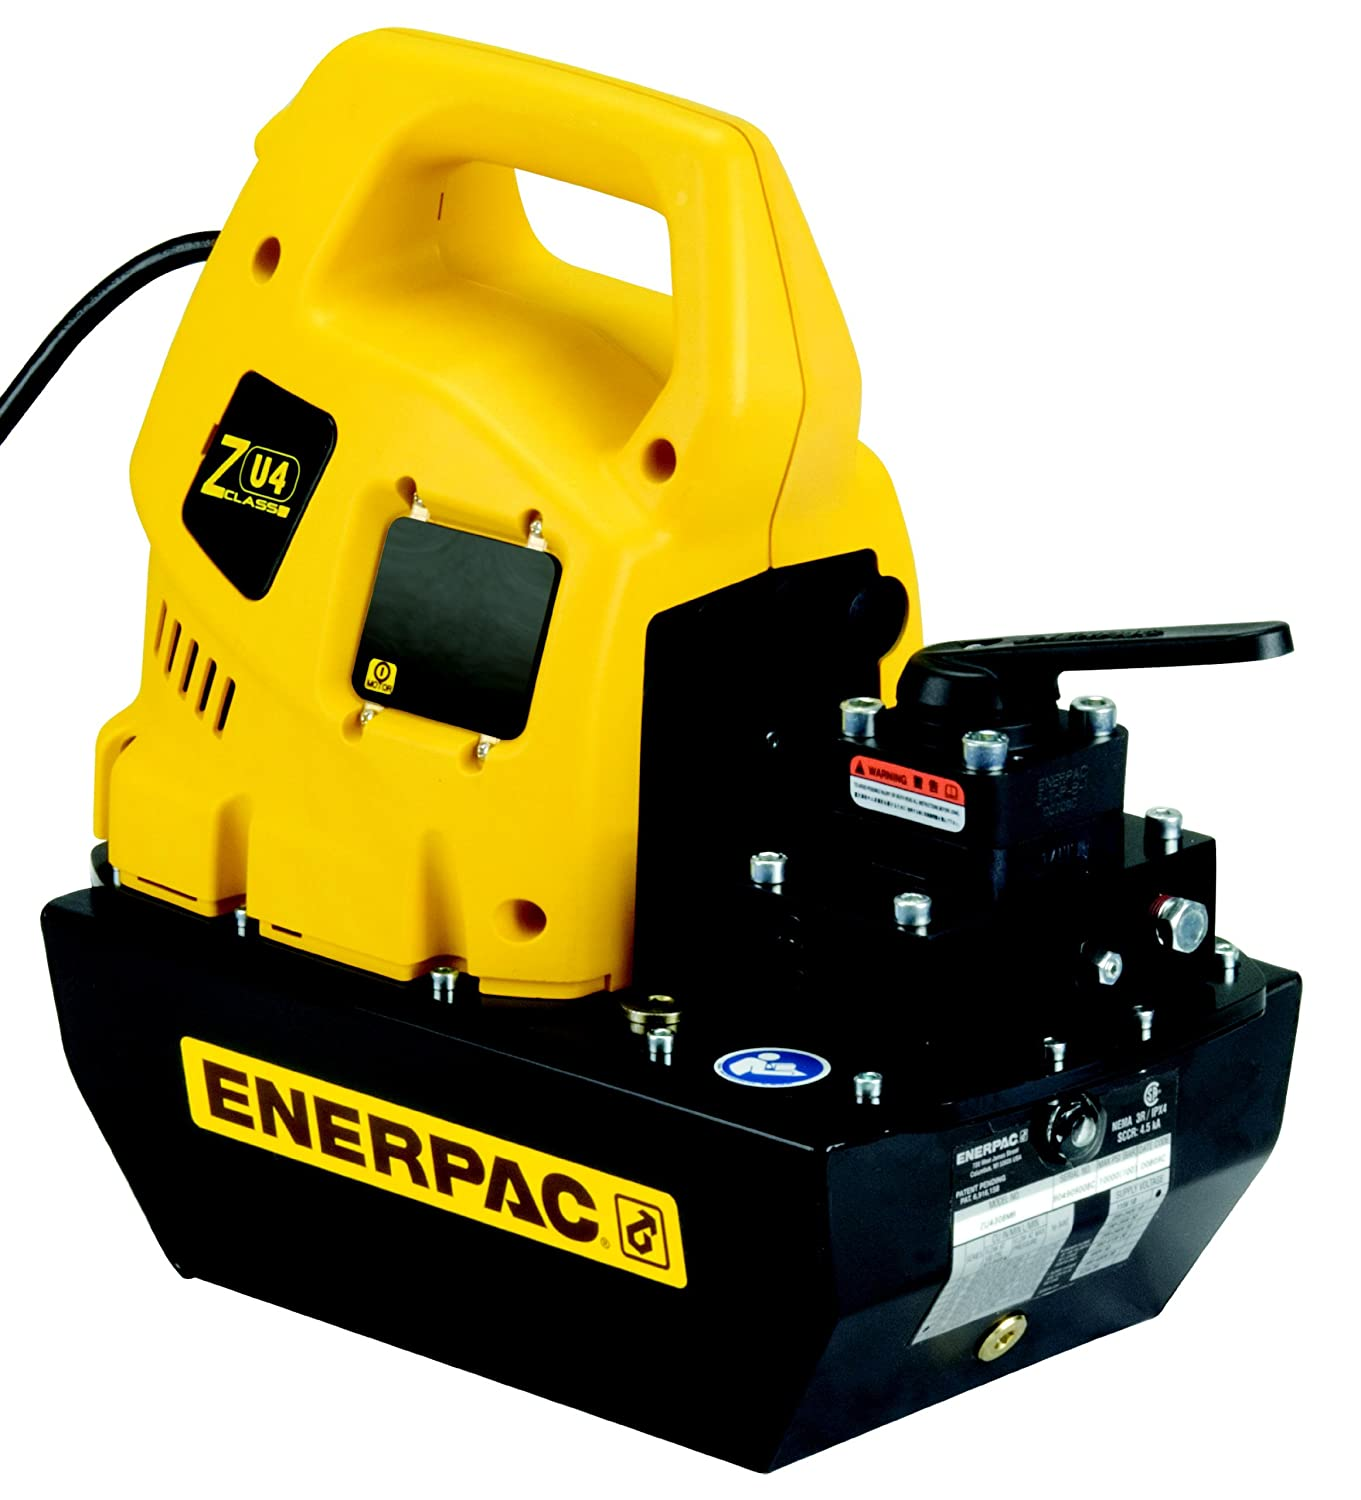 Enerpac ZU4208MB Universal Electric Pump with VM32 Manual Valve Standard 115V and 8 L Usable Oil Capacity